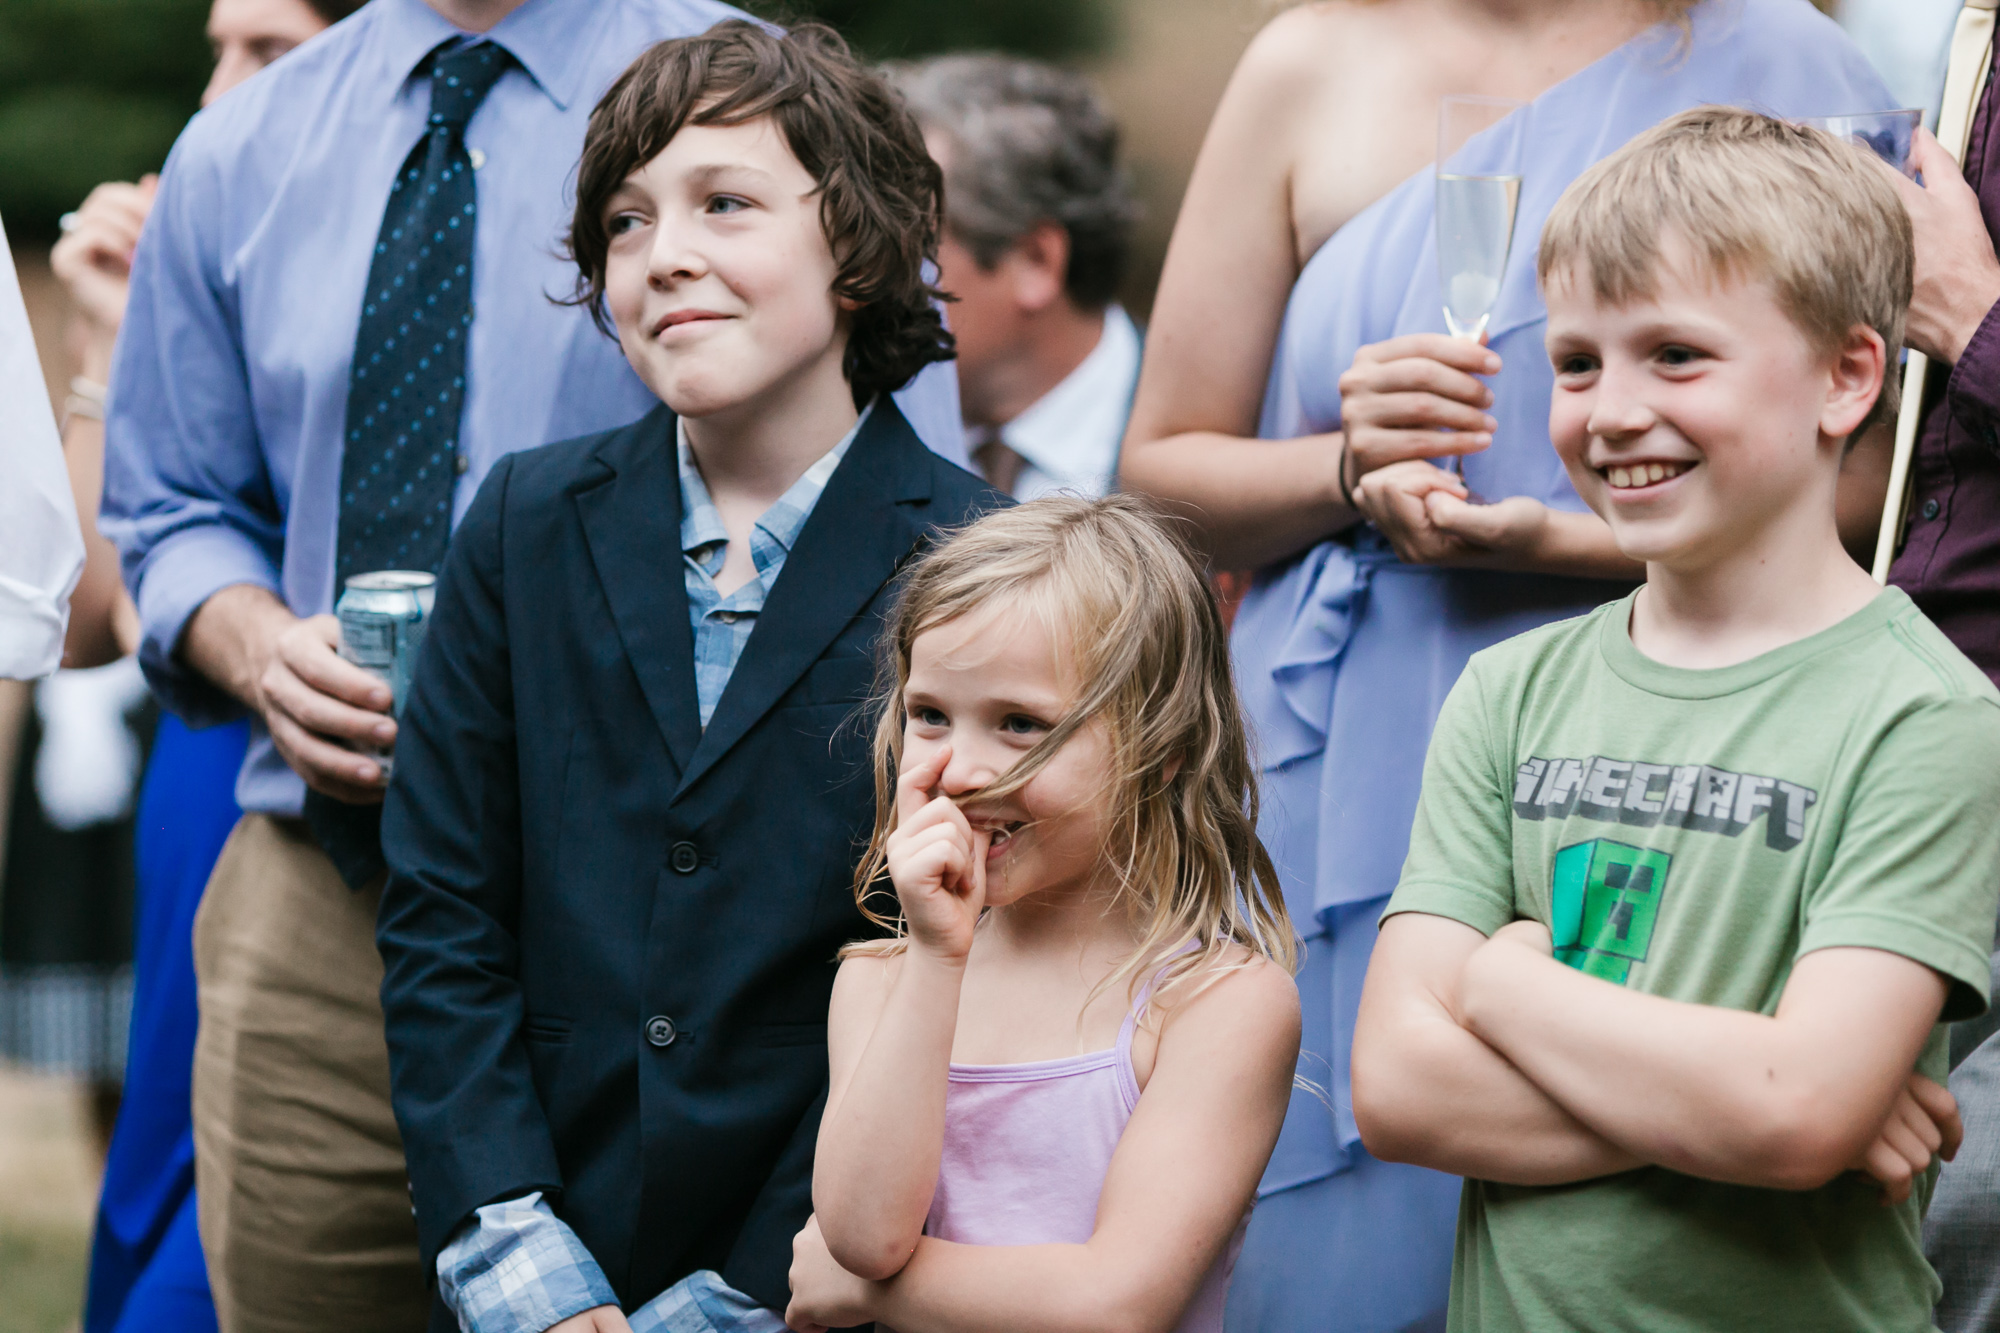 Kids at wedding happily watch couple cut their cake